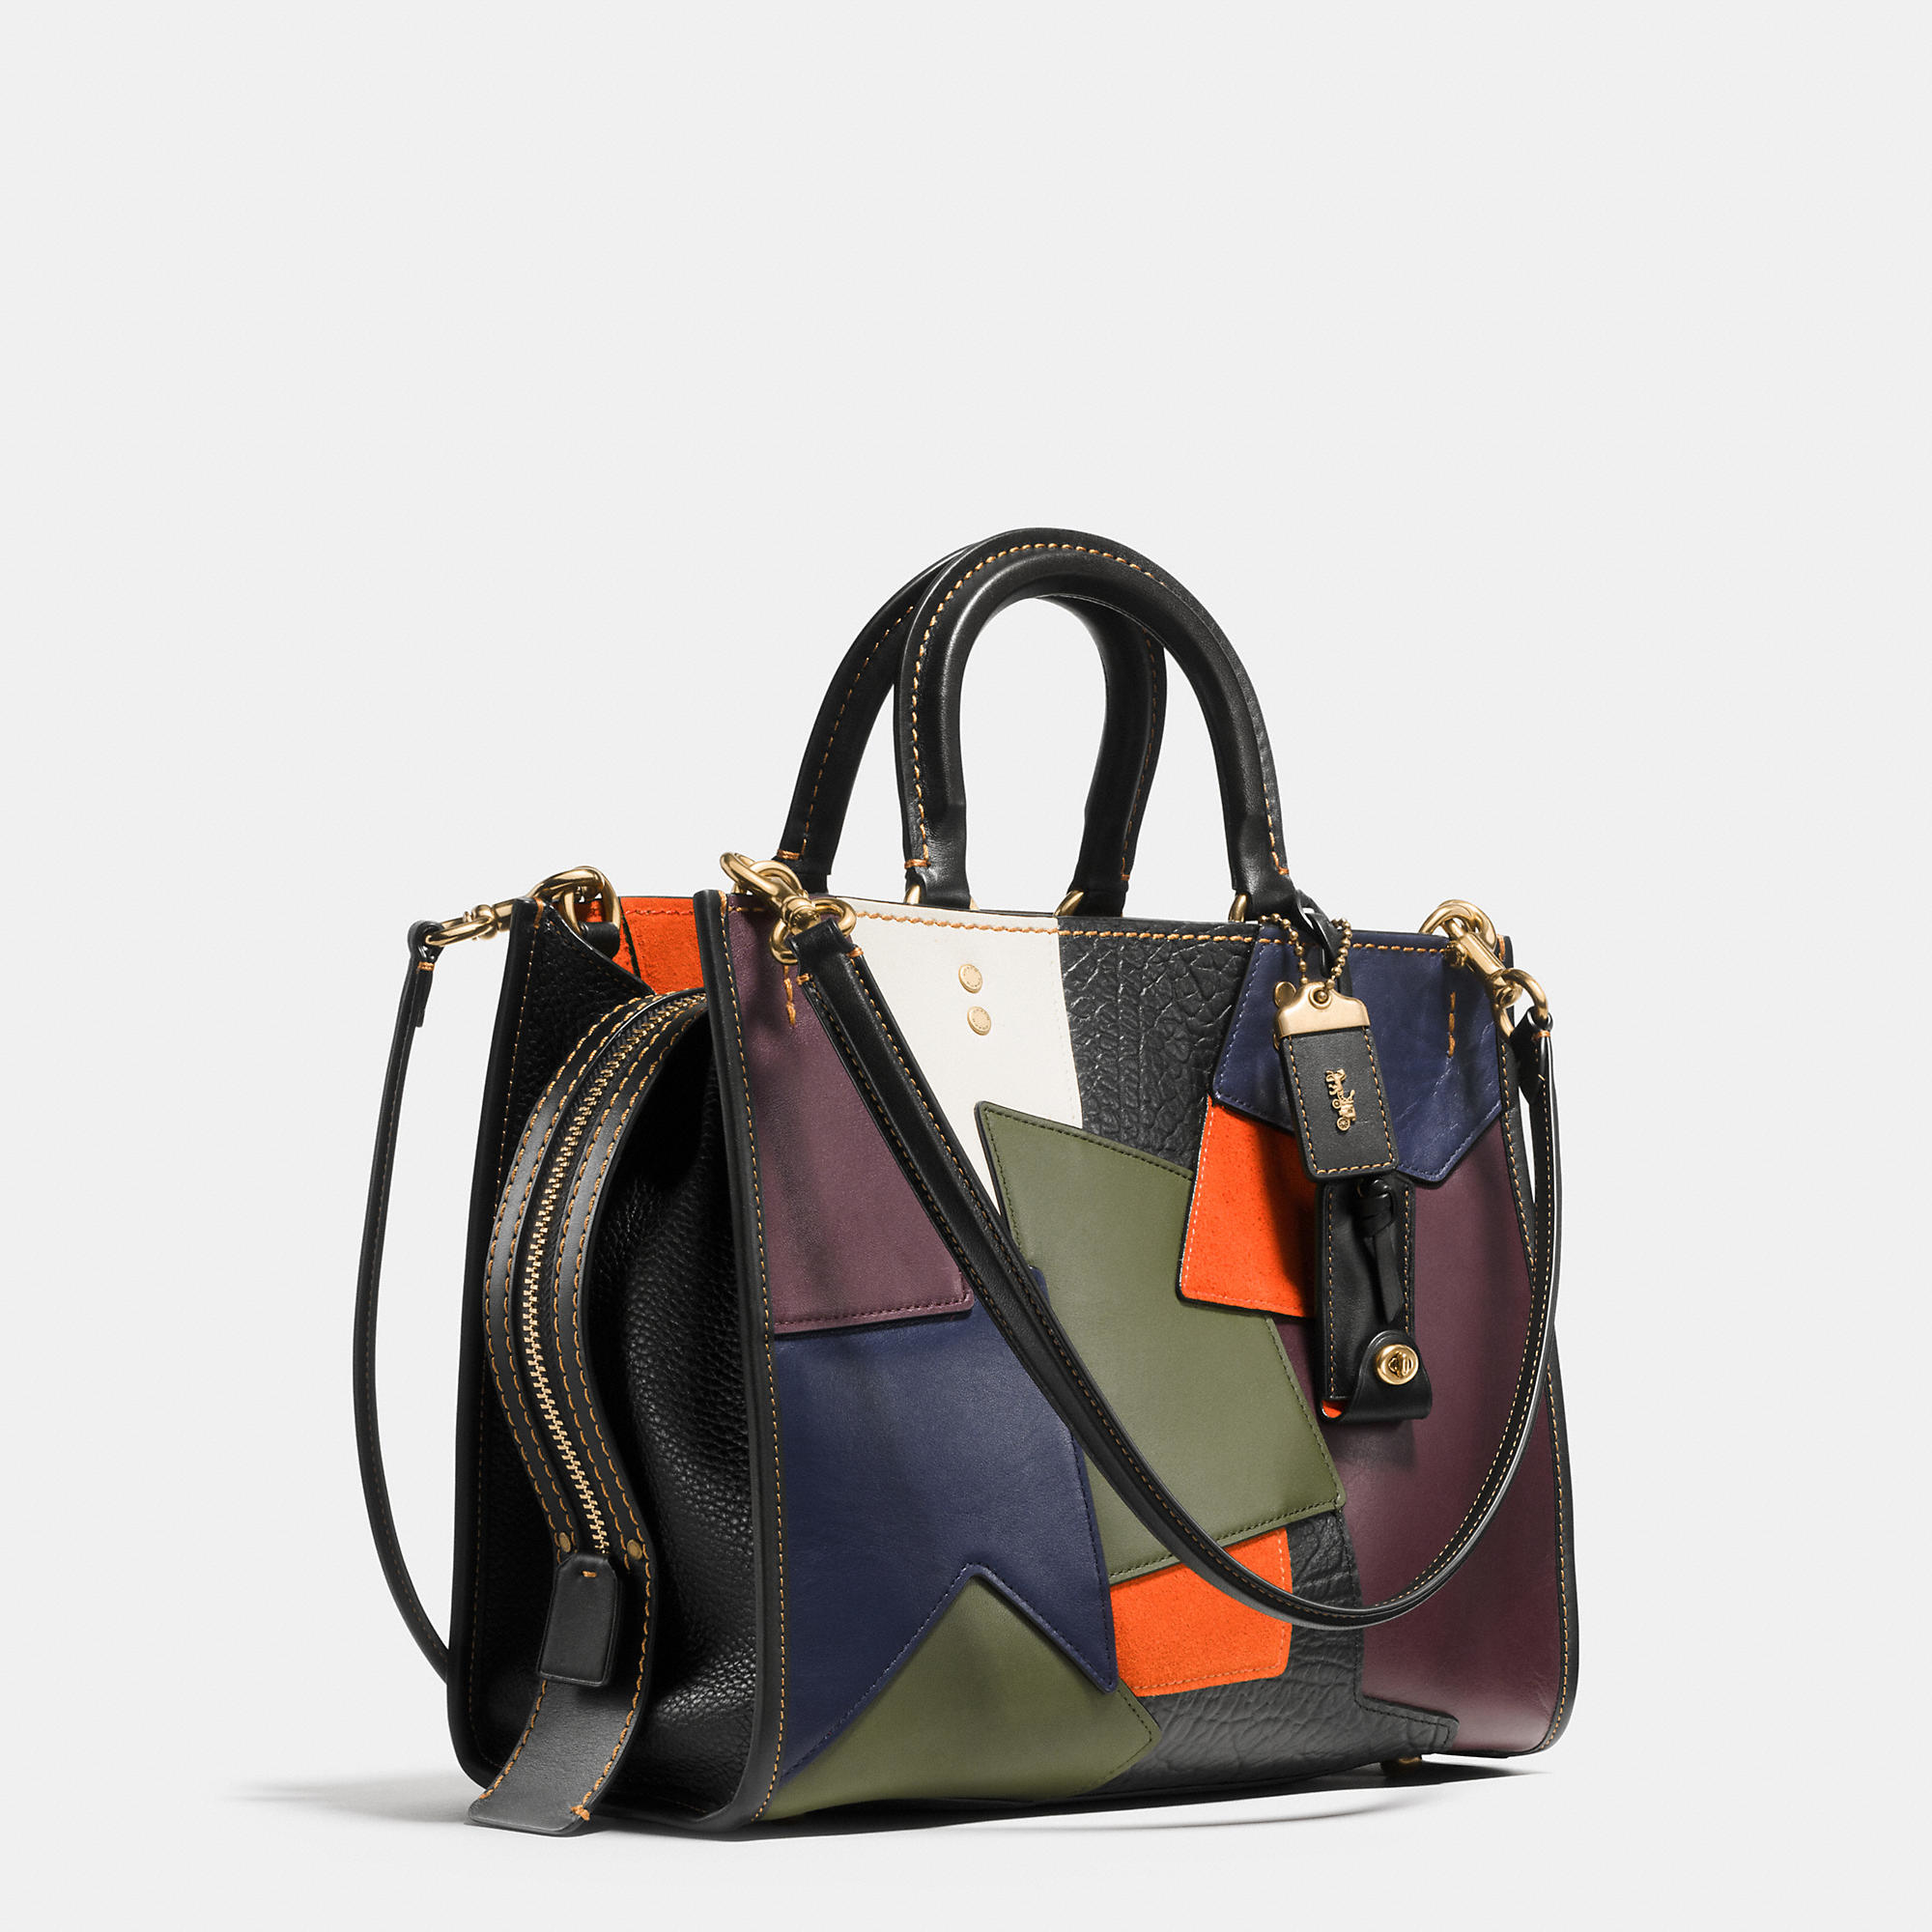 aa5288440efa Lyst - COACH Rogue Bag In Patchwork Leather